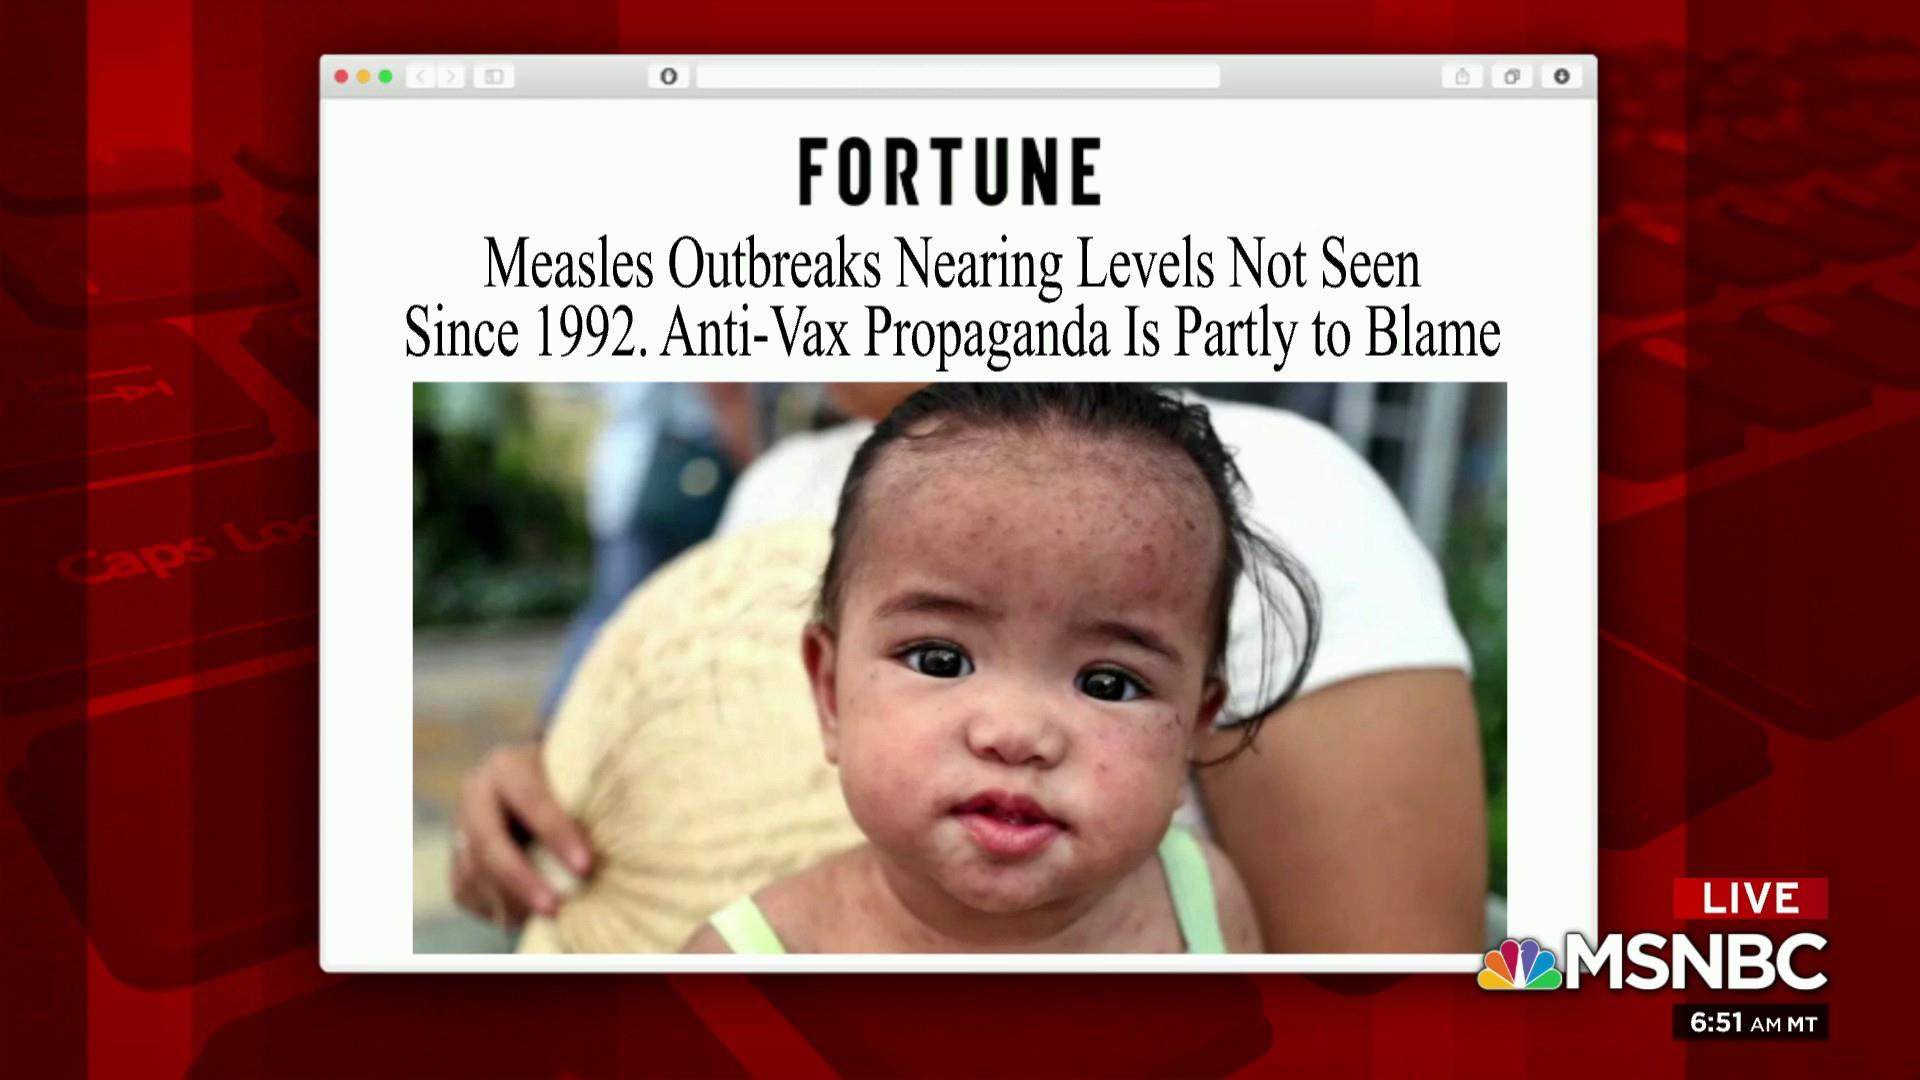 Health officials encourage vaccination amid measles outbreak